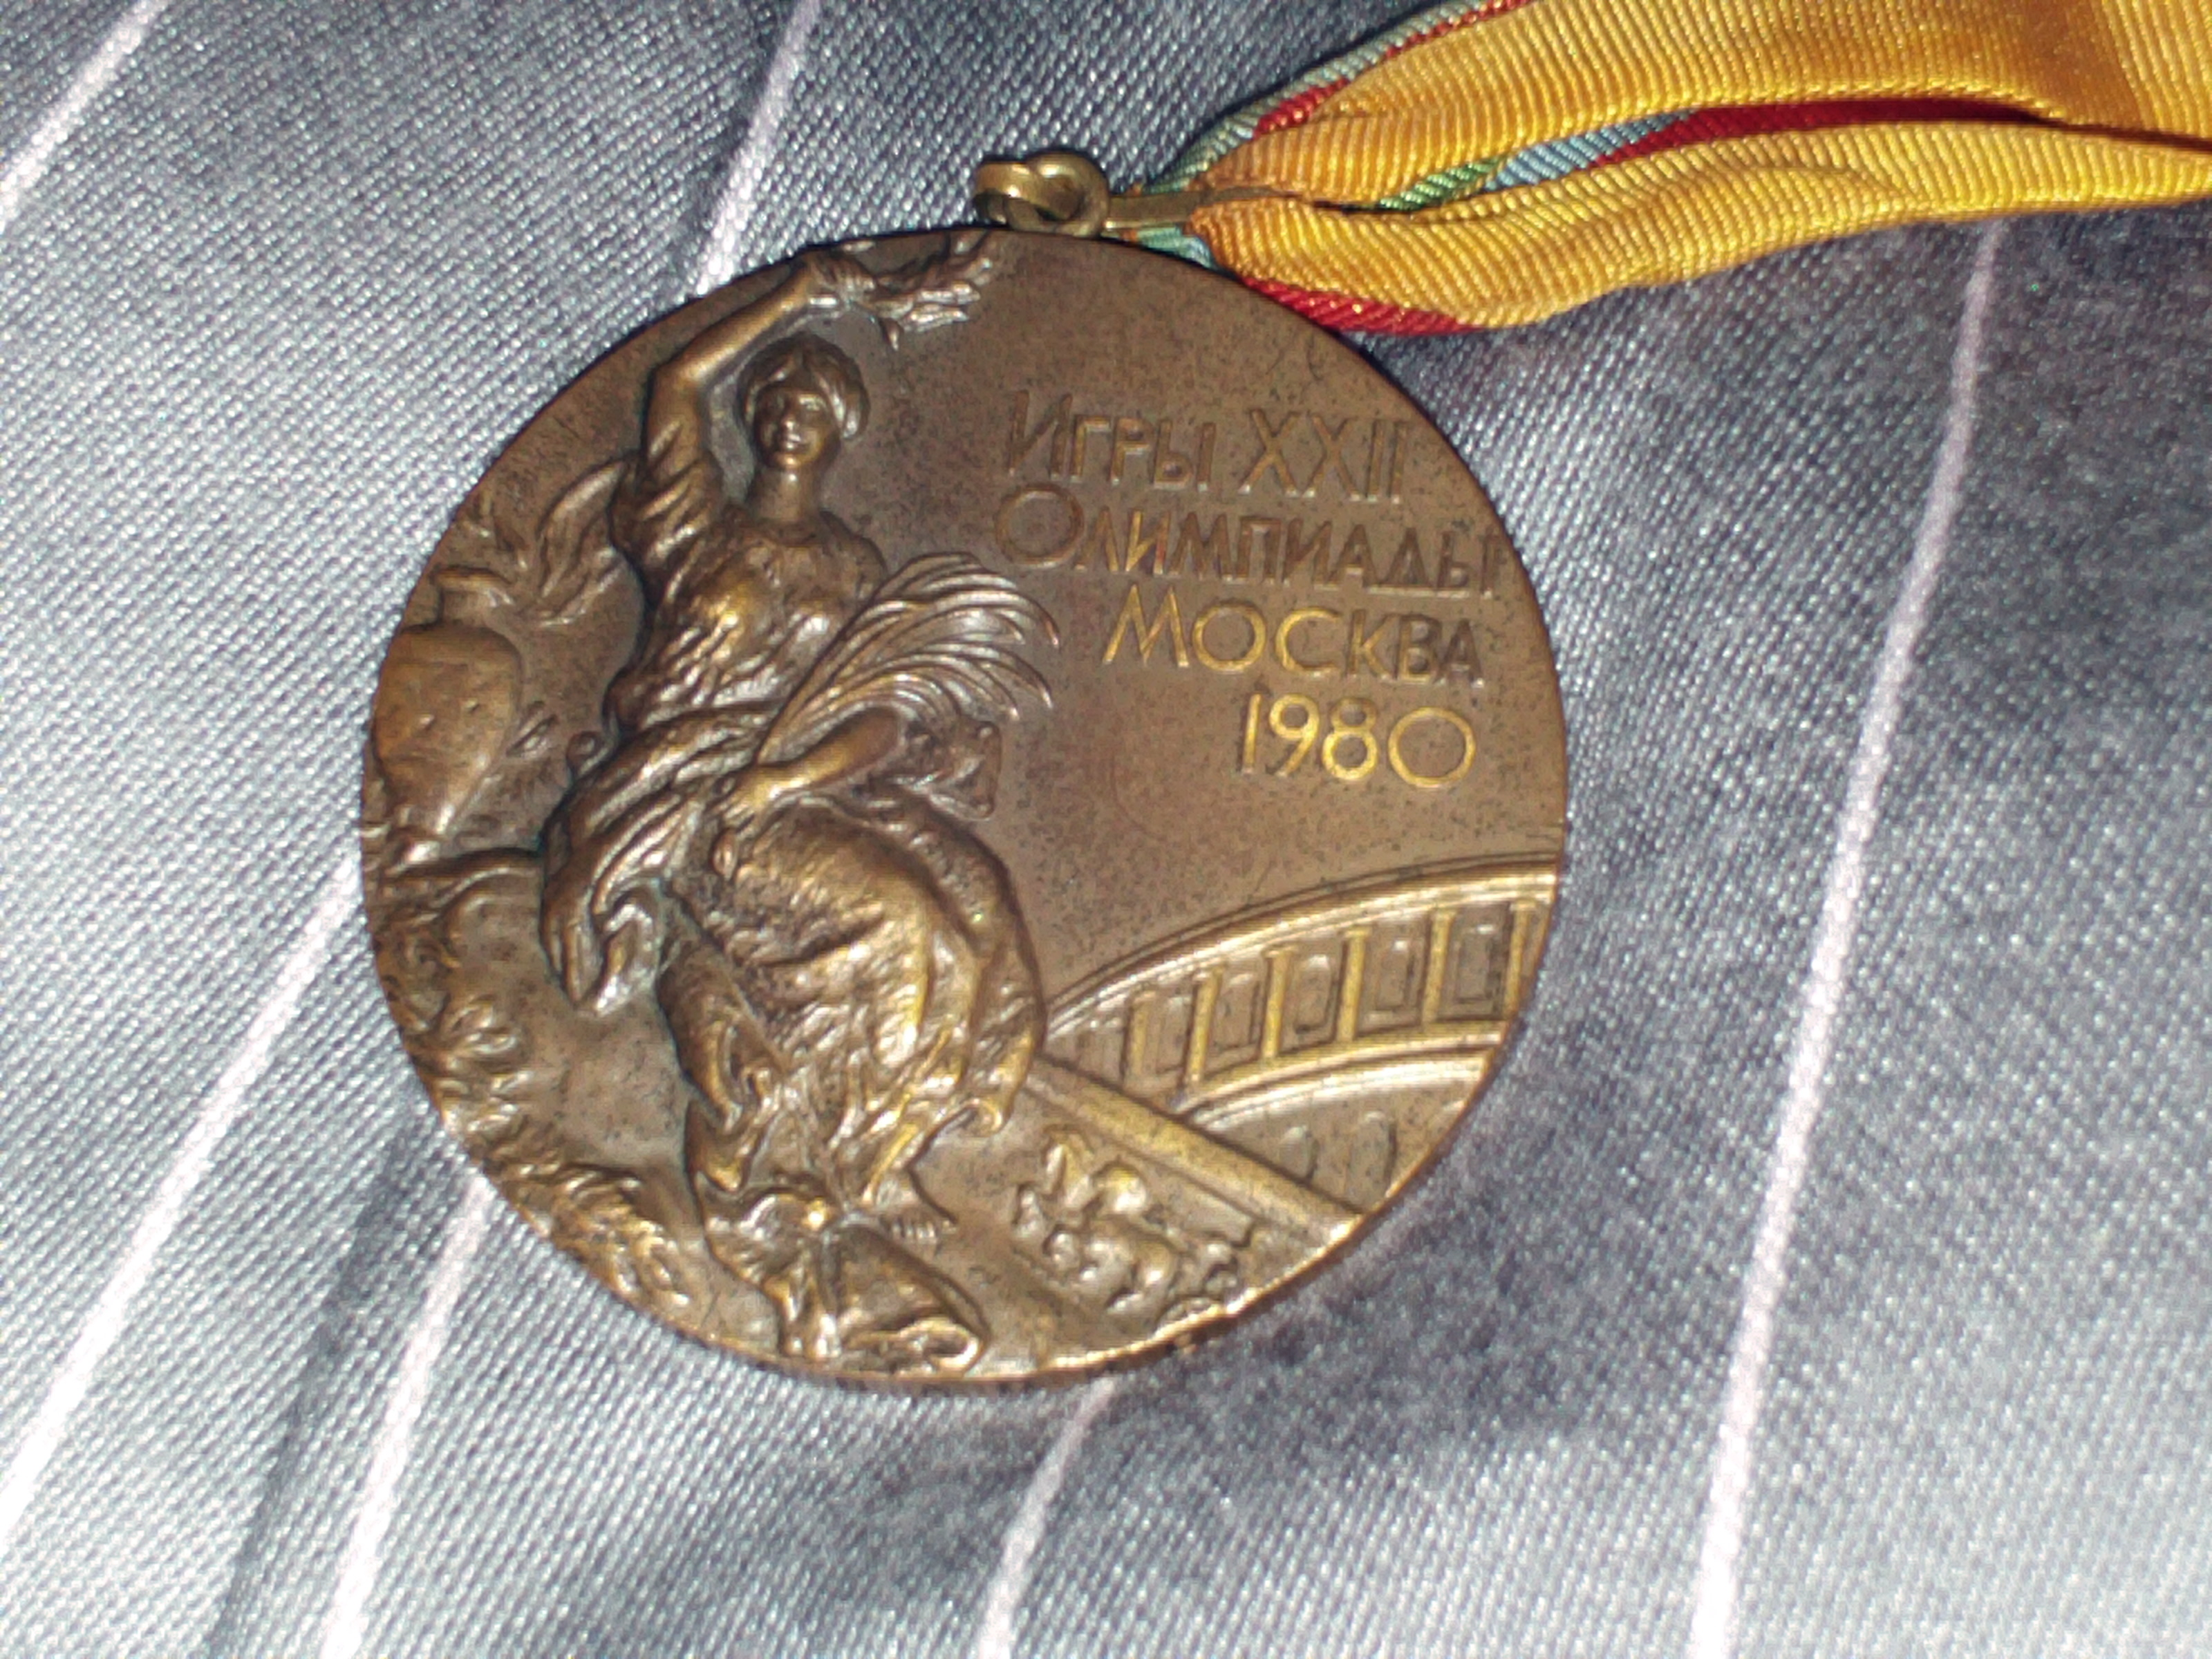 http://upload.wikimedia.org/wikipedia/commons/8/83/1980_Summer_Olympics_bronze_medal.JPG